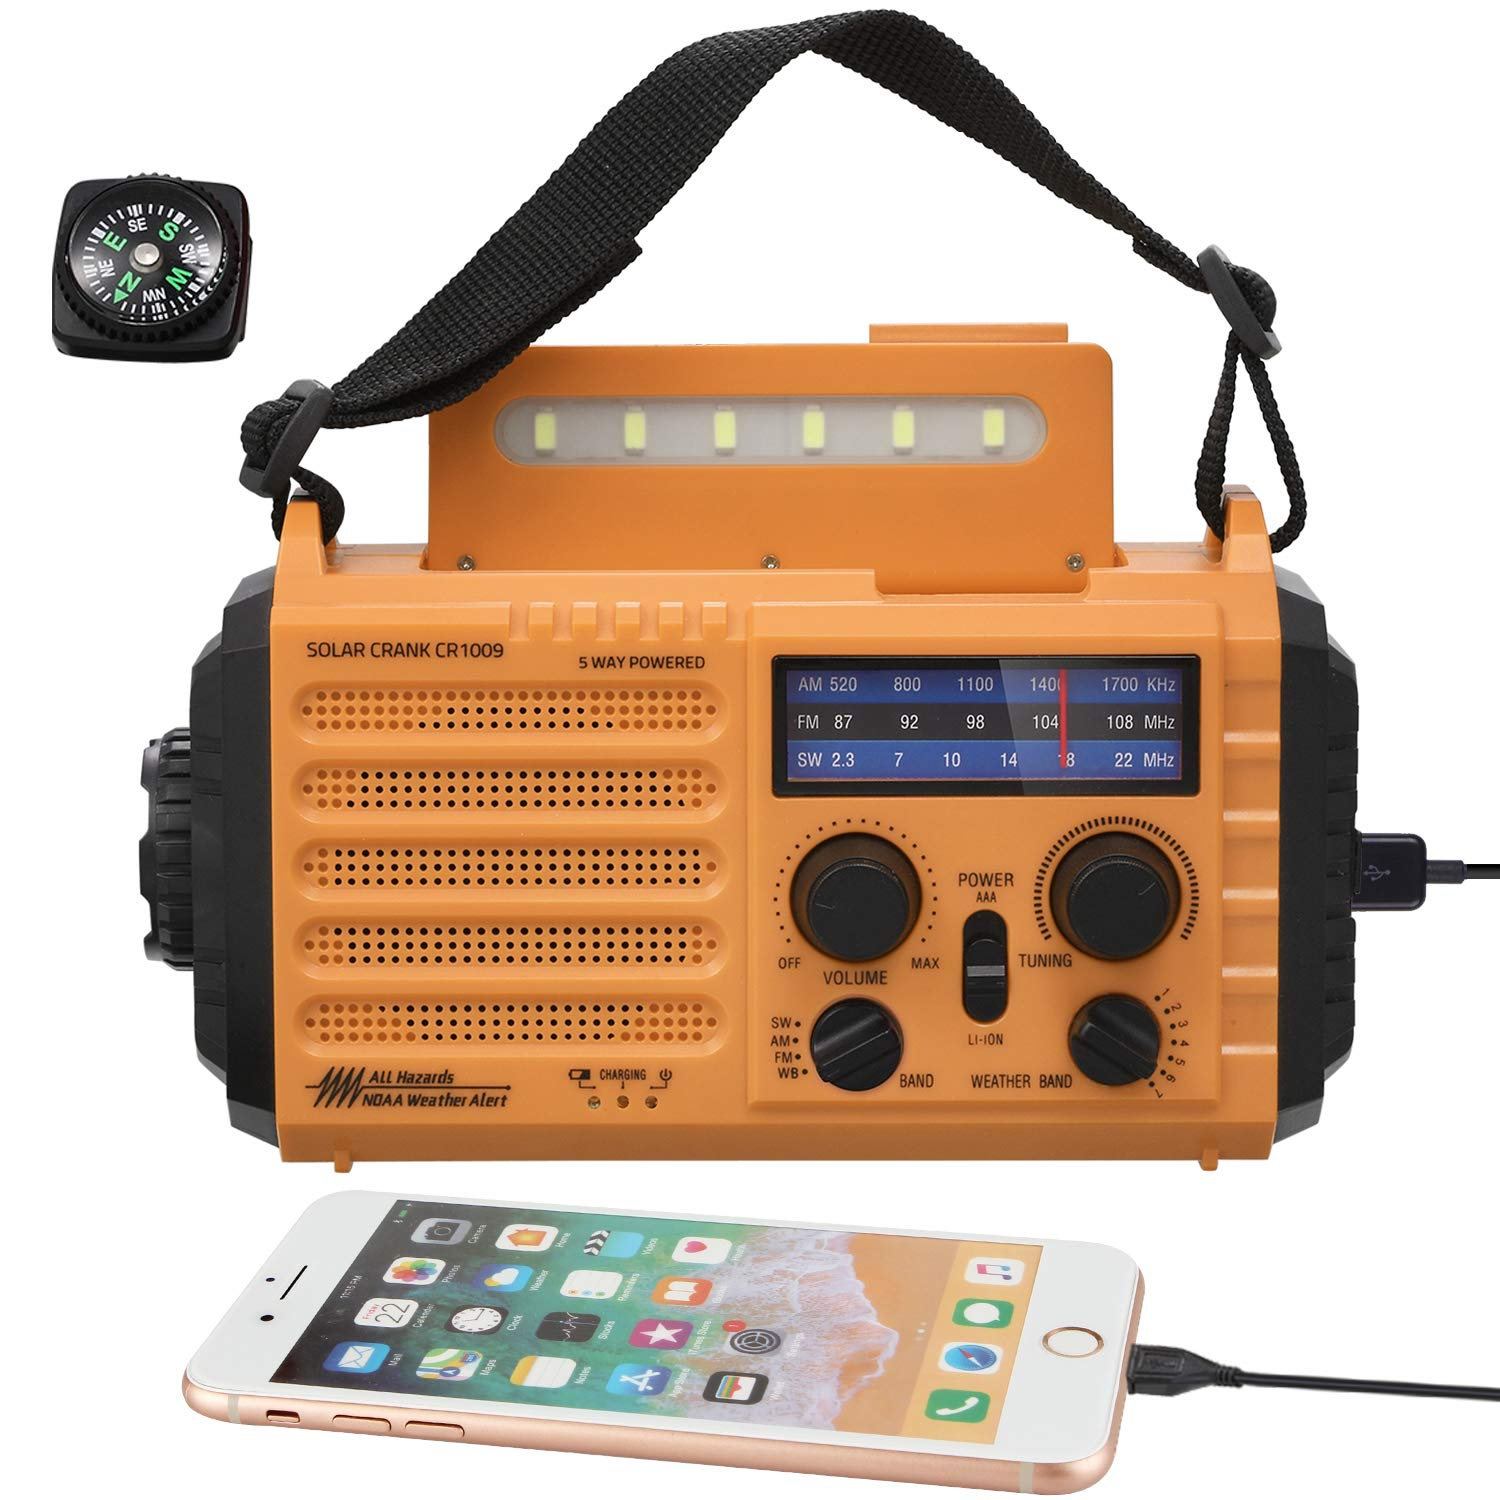 Weather Emergency Radio with 7 NOAA Weather Bands&SOS Alarm, 5-Way Powered AM FM SW Radio with 2000mAh Battery Power Bank for Cellphone USB Charger,Flashlight,Table Lamp,Compass,Hand Crank,Solar Panel by Mesqool